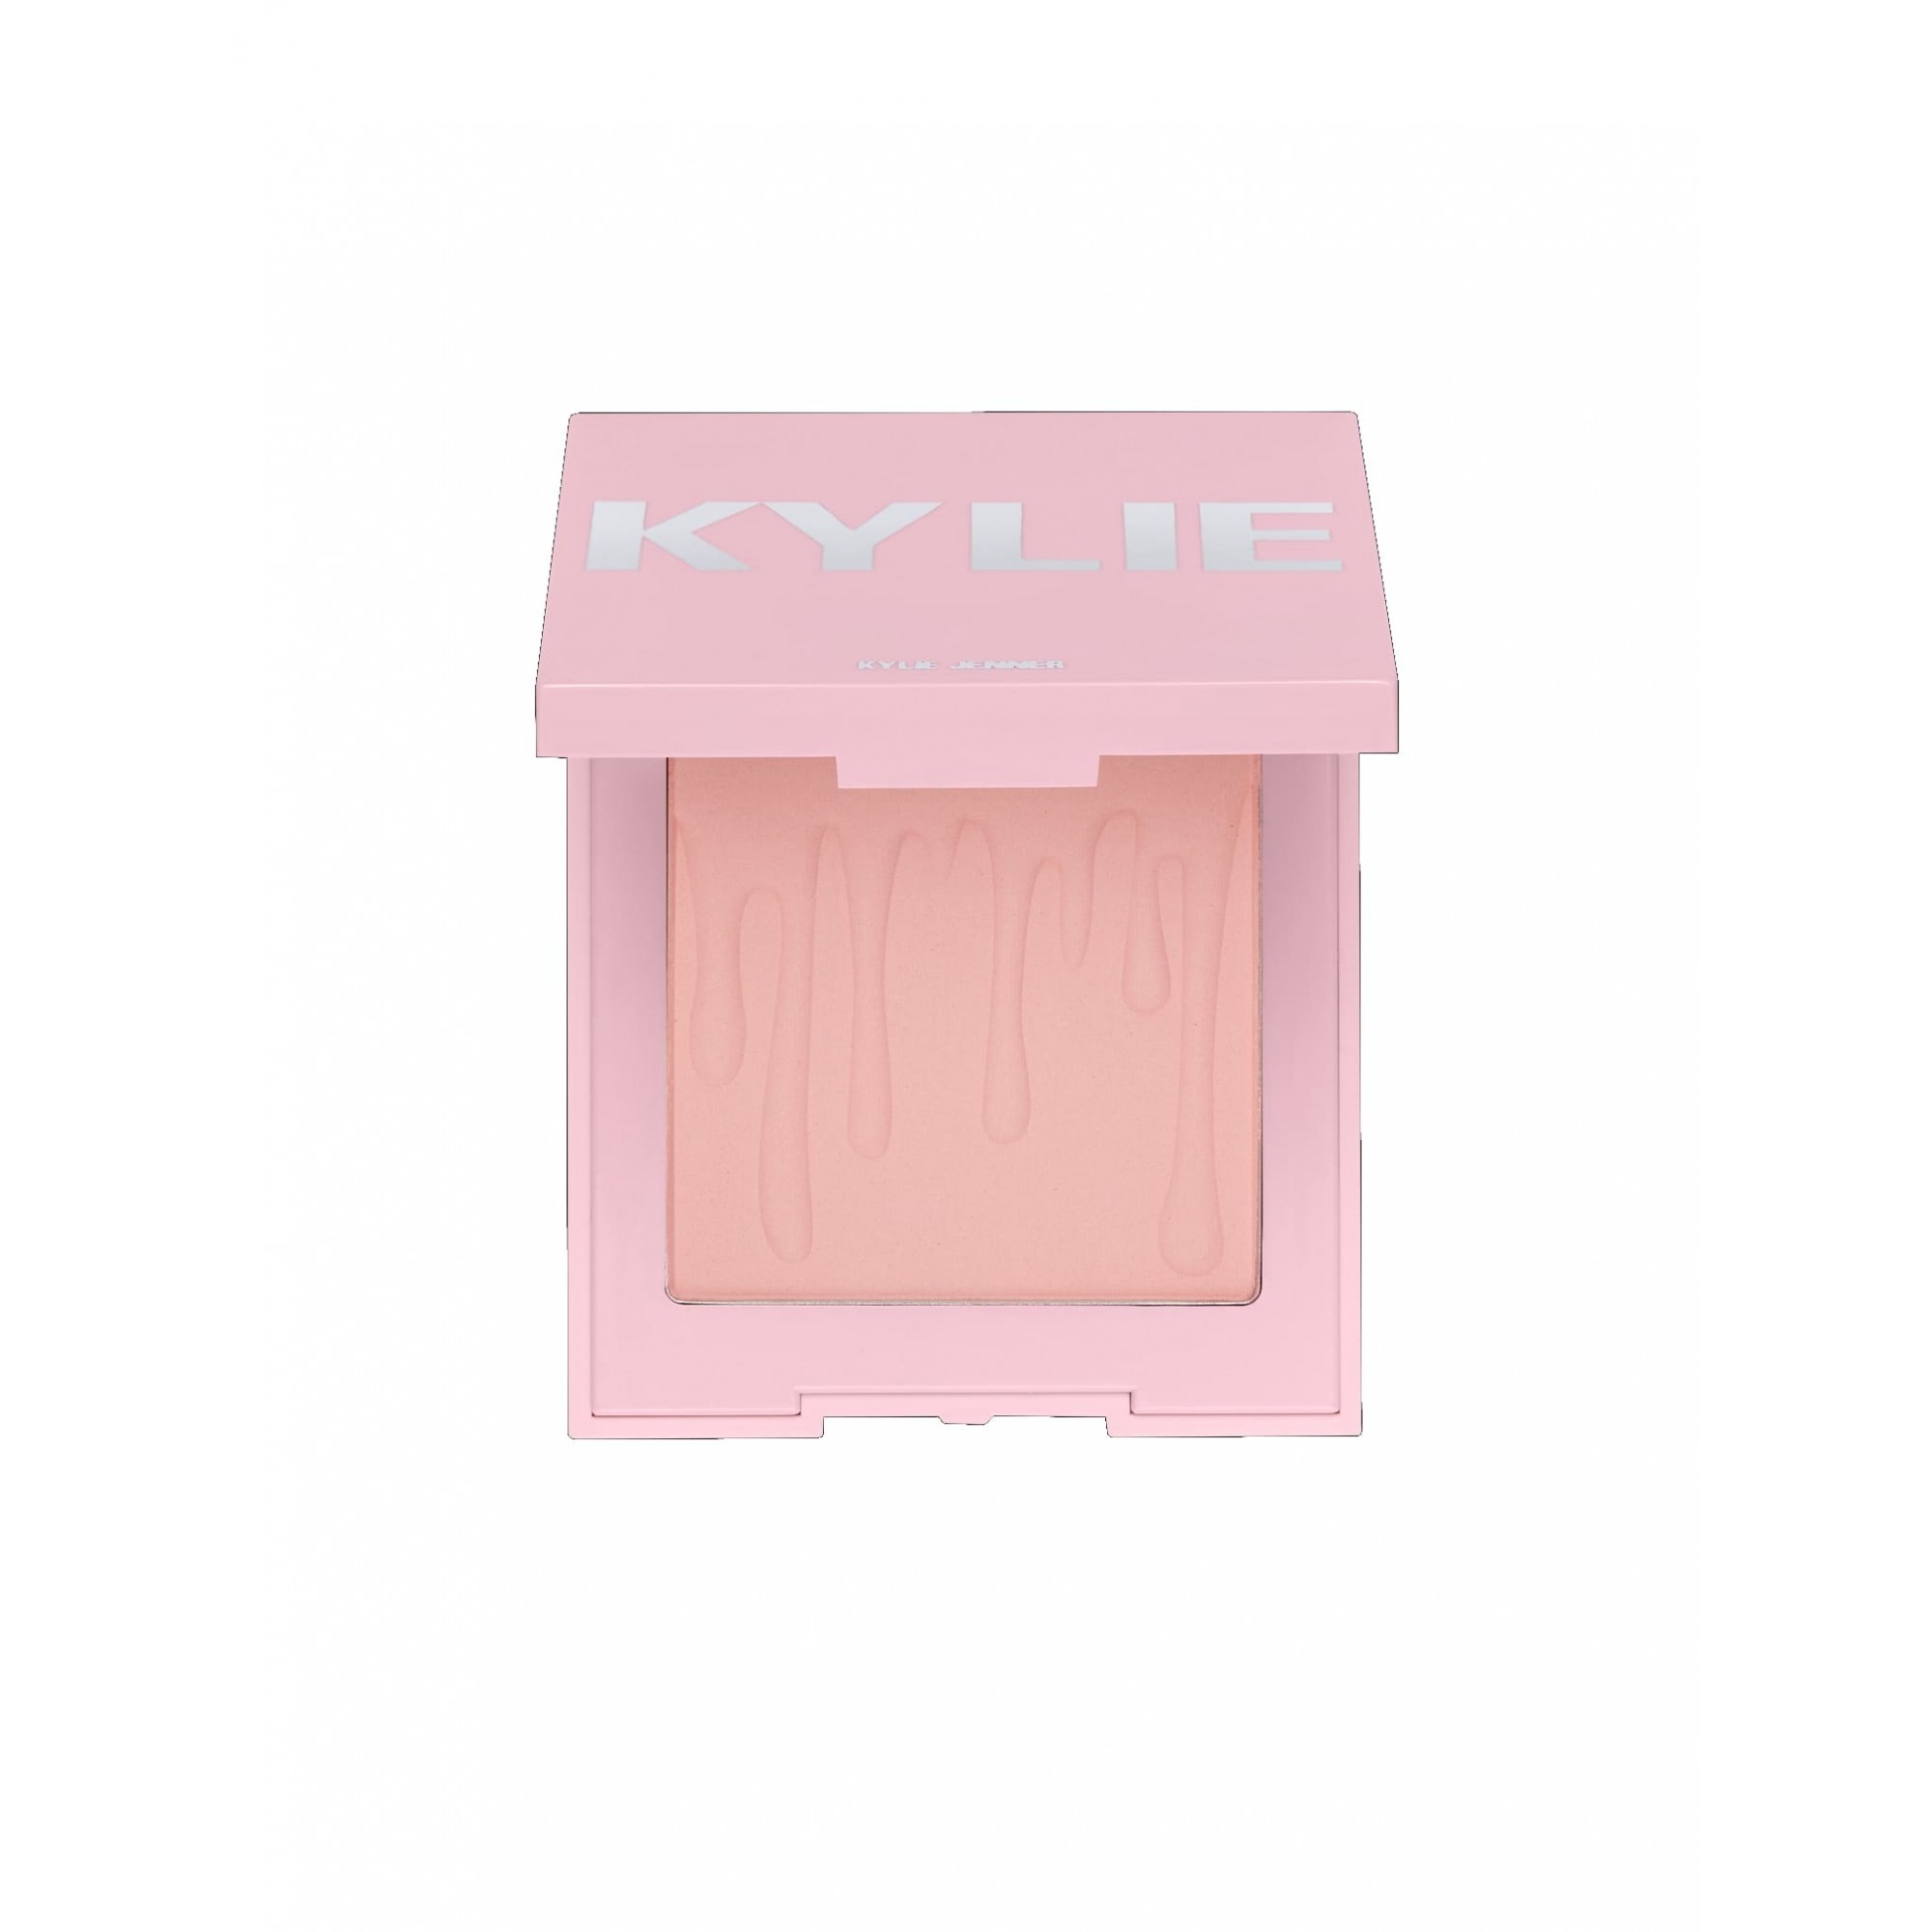 Kylie Cosmetics Pink Power Blush